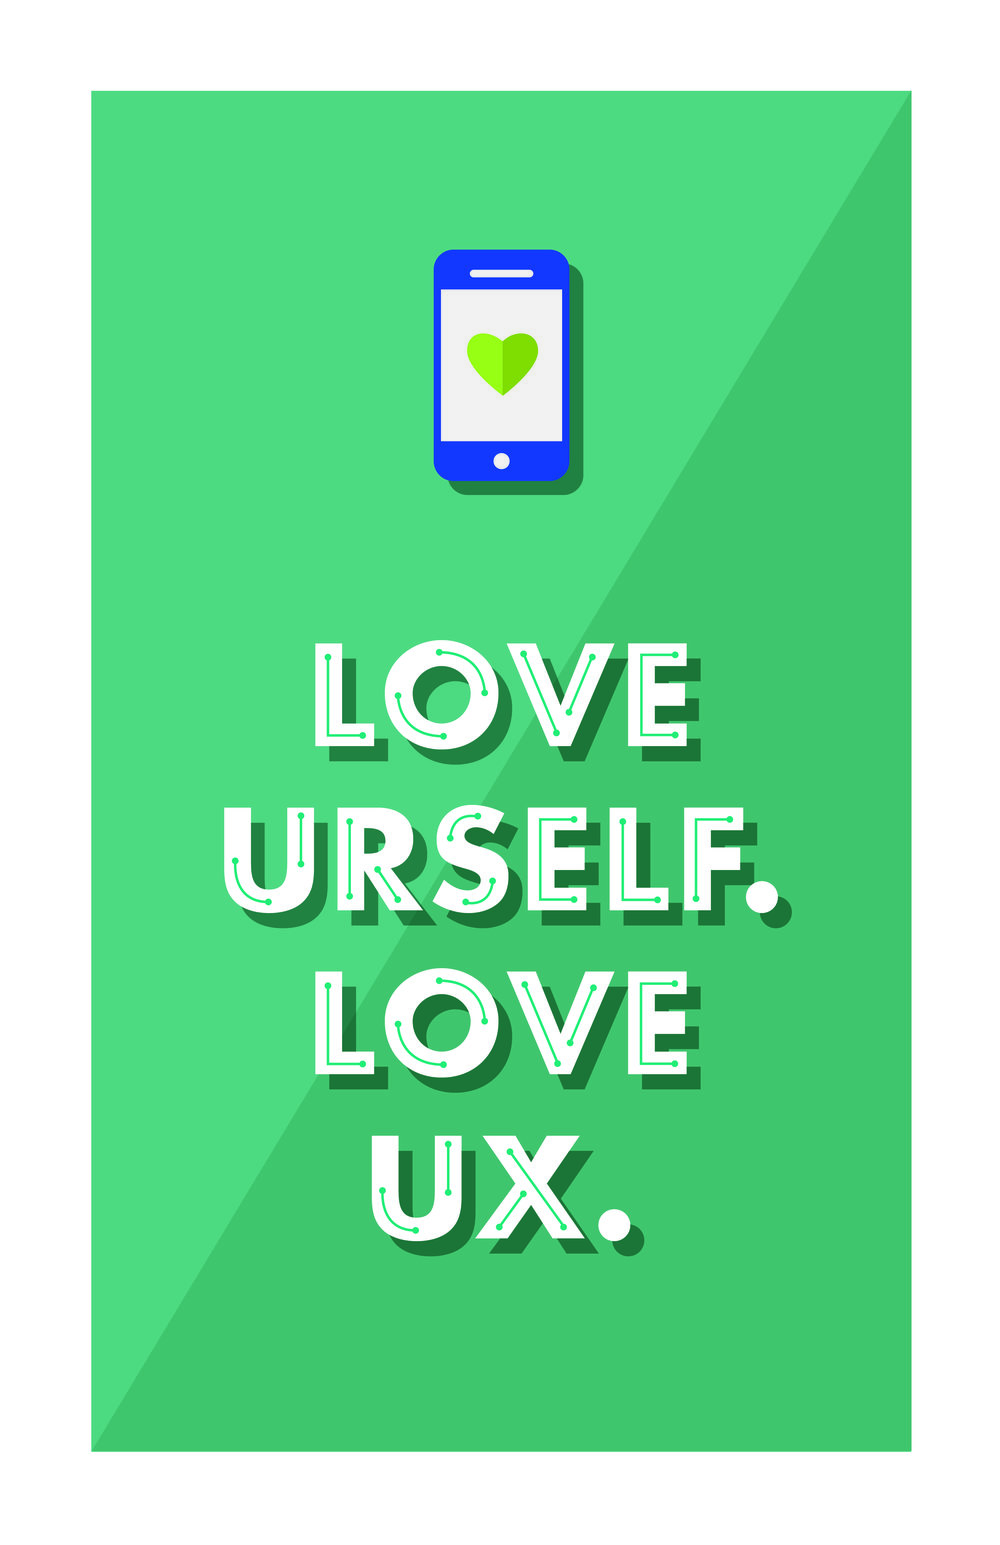 Promotional Poster for a Talk UX Event